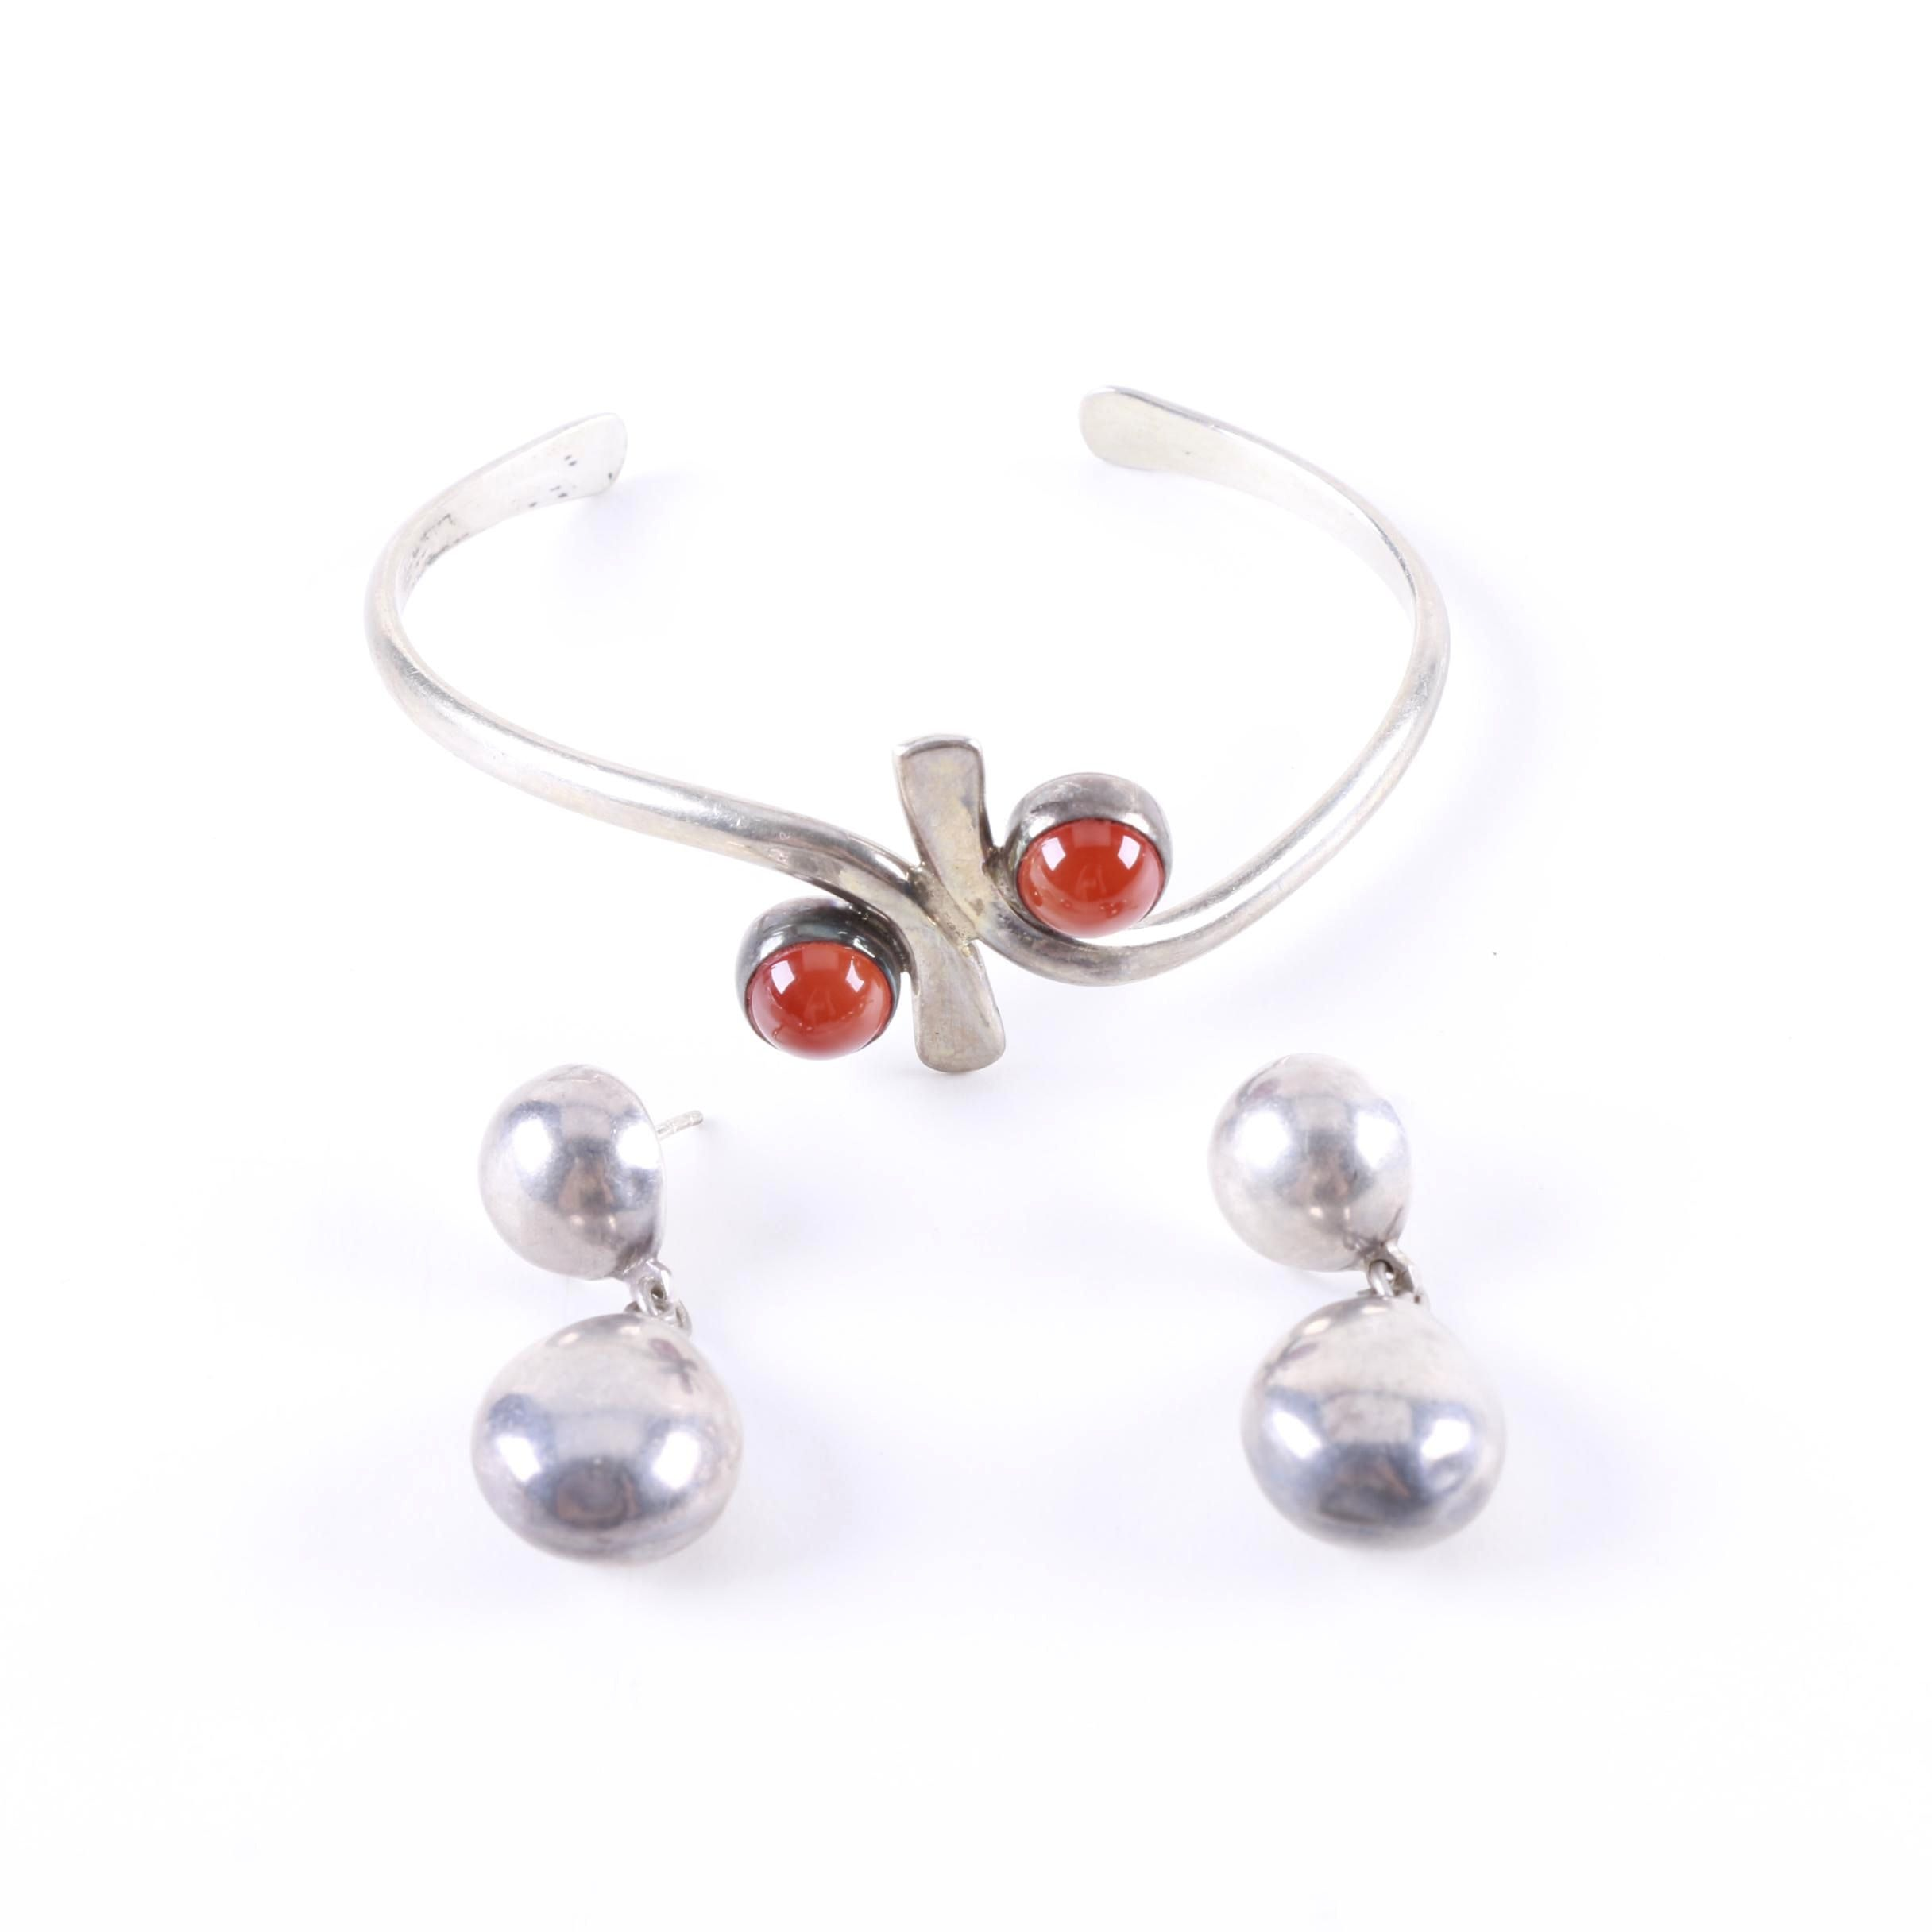 Sterling Bracelet with Carnelian Cabochons and Silver Earrings